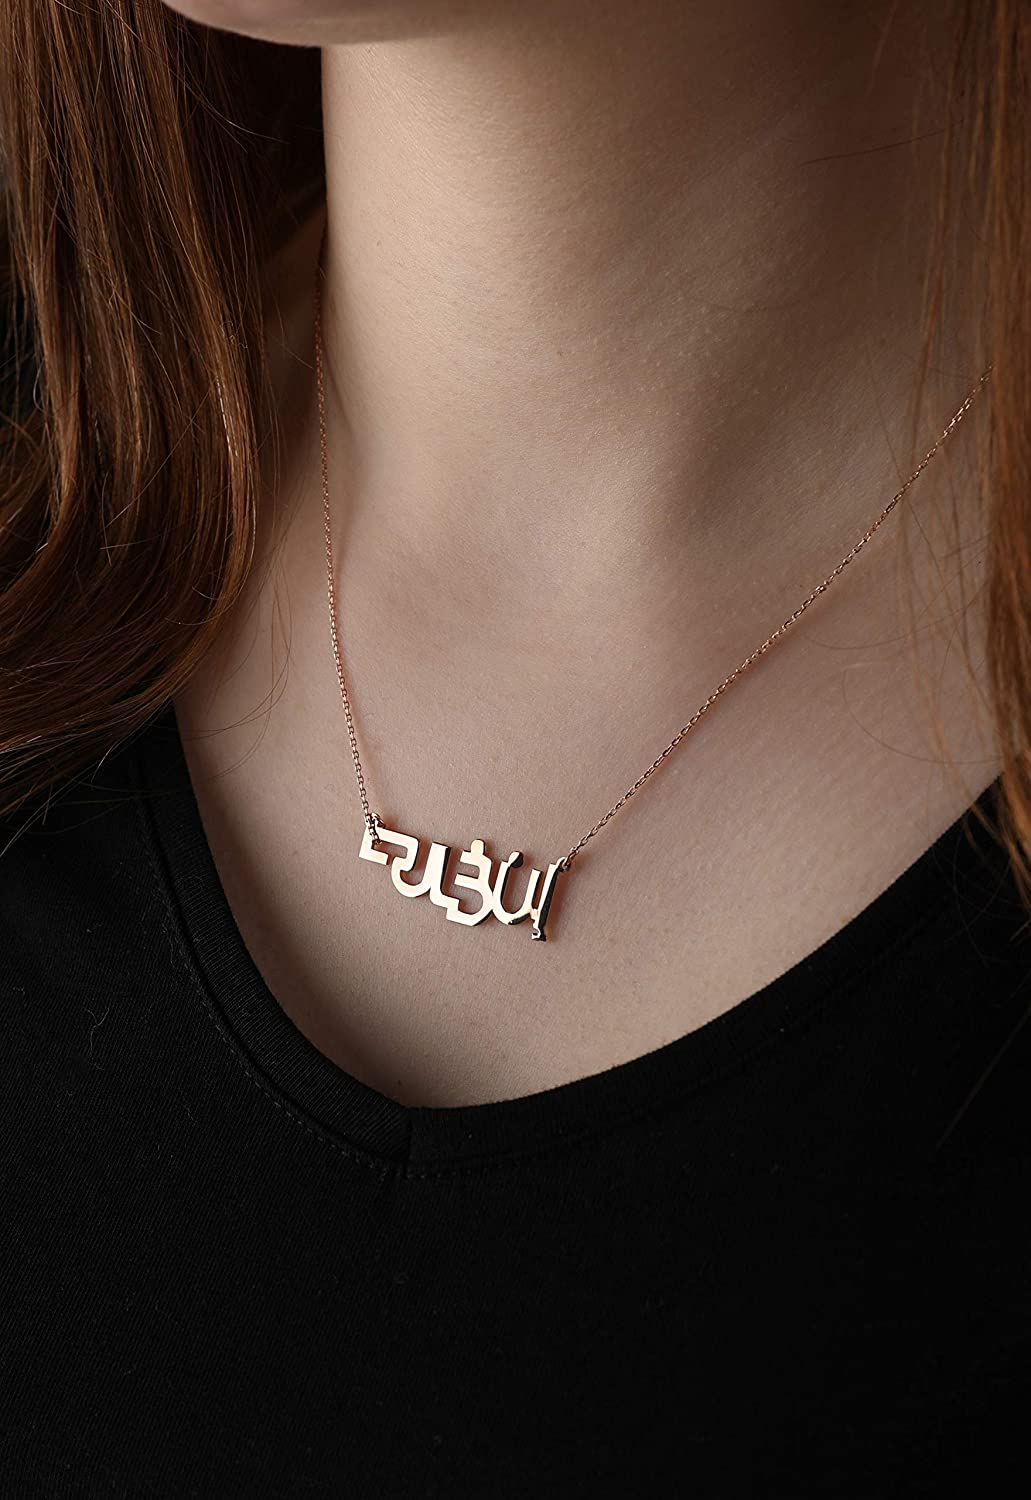 name customized gift valentine mothers day 18k gold necklace Calligraphy M N P R S V W Z pendant in latin and arabic letter personalized